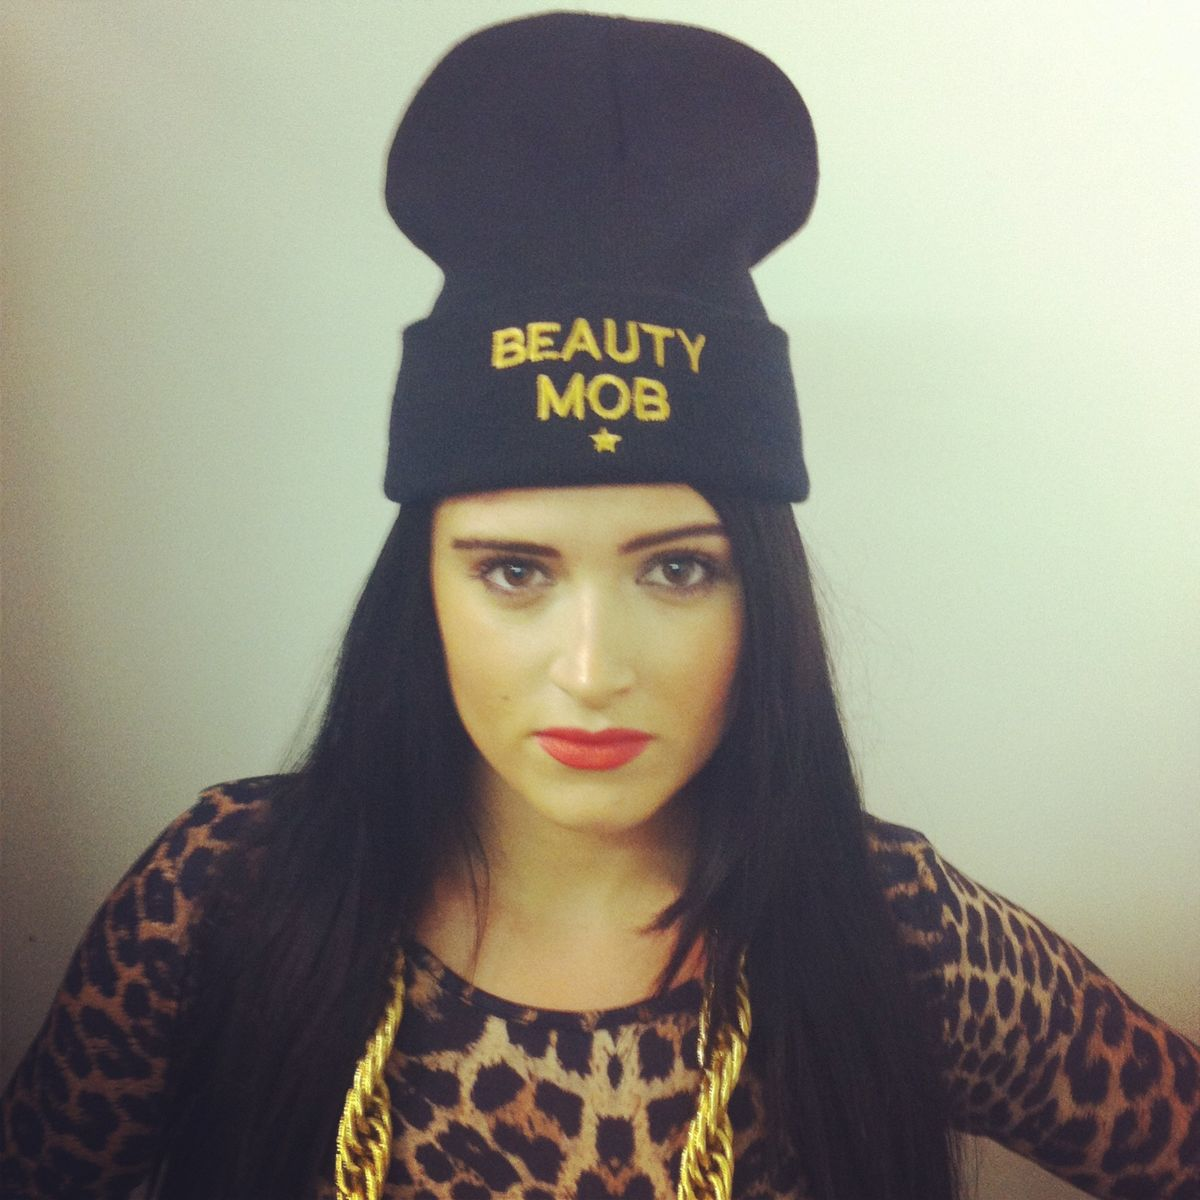 Beauty Mob Black 'MOBSTER' Beanie Hat - product images  of